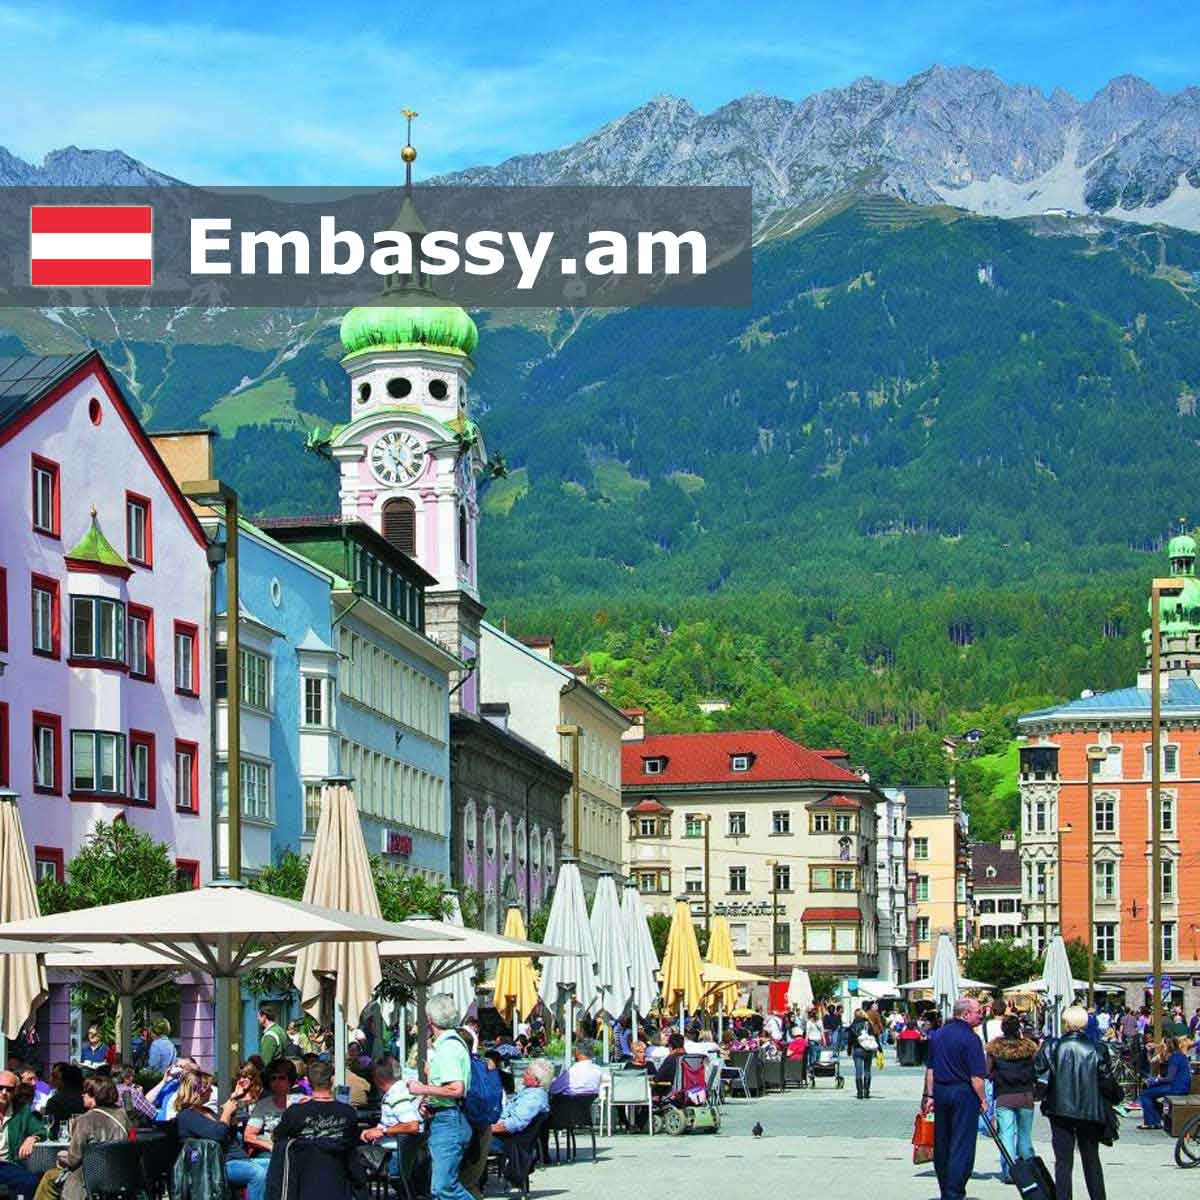 Innsbruck - Hotels in Austria - Embassy.am